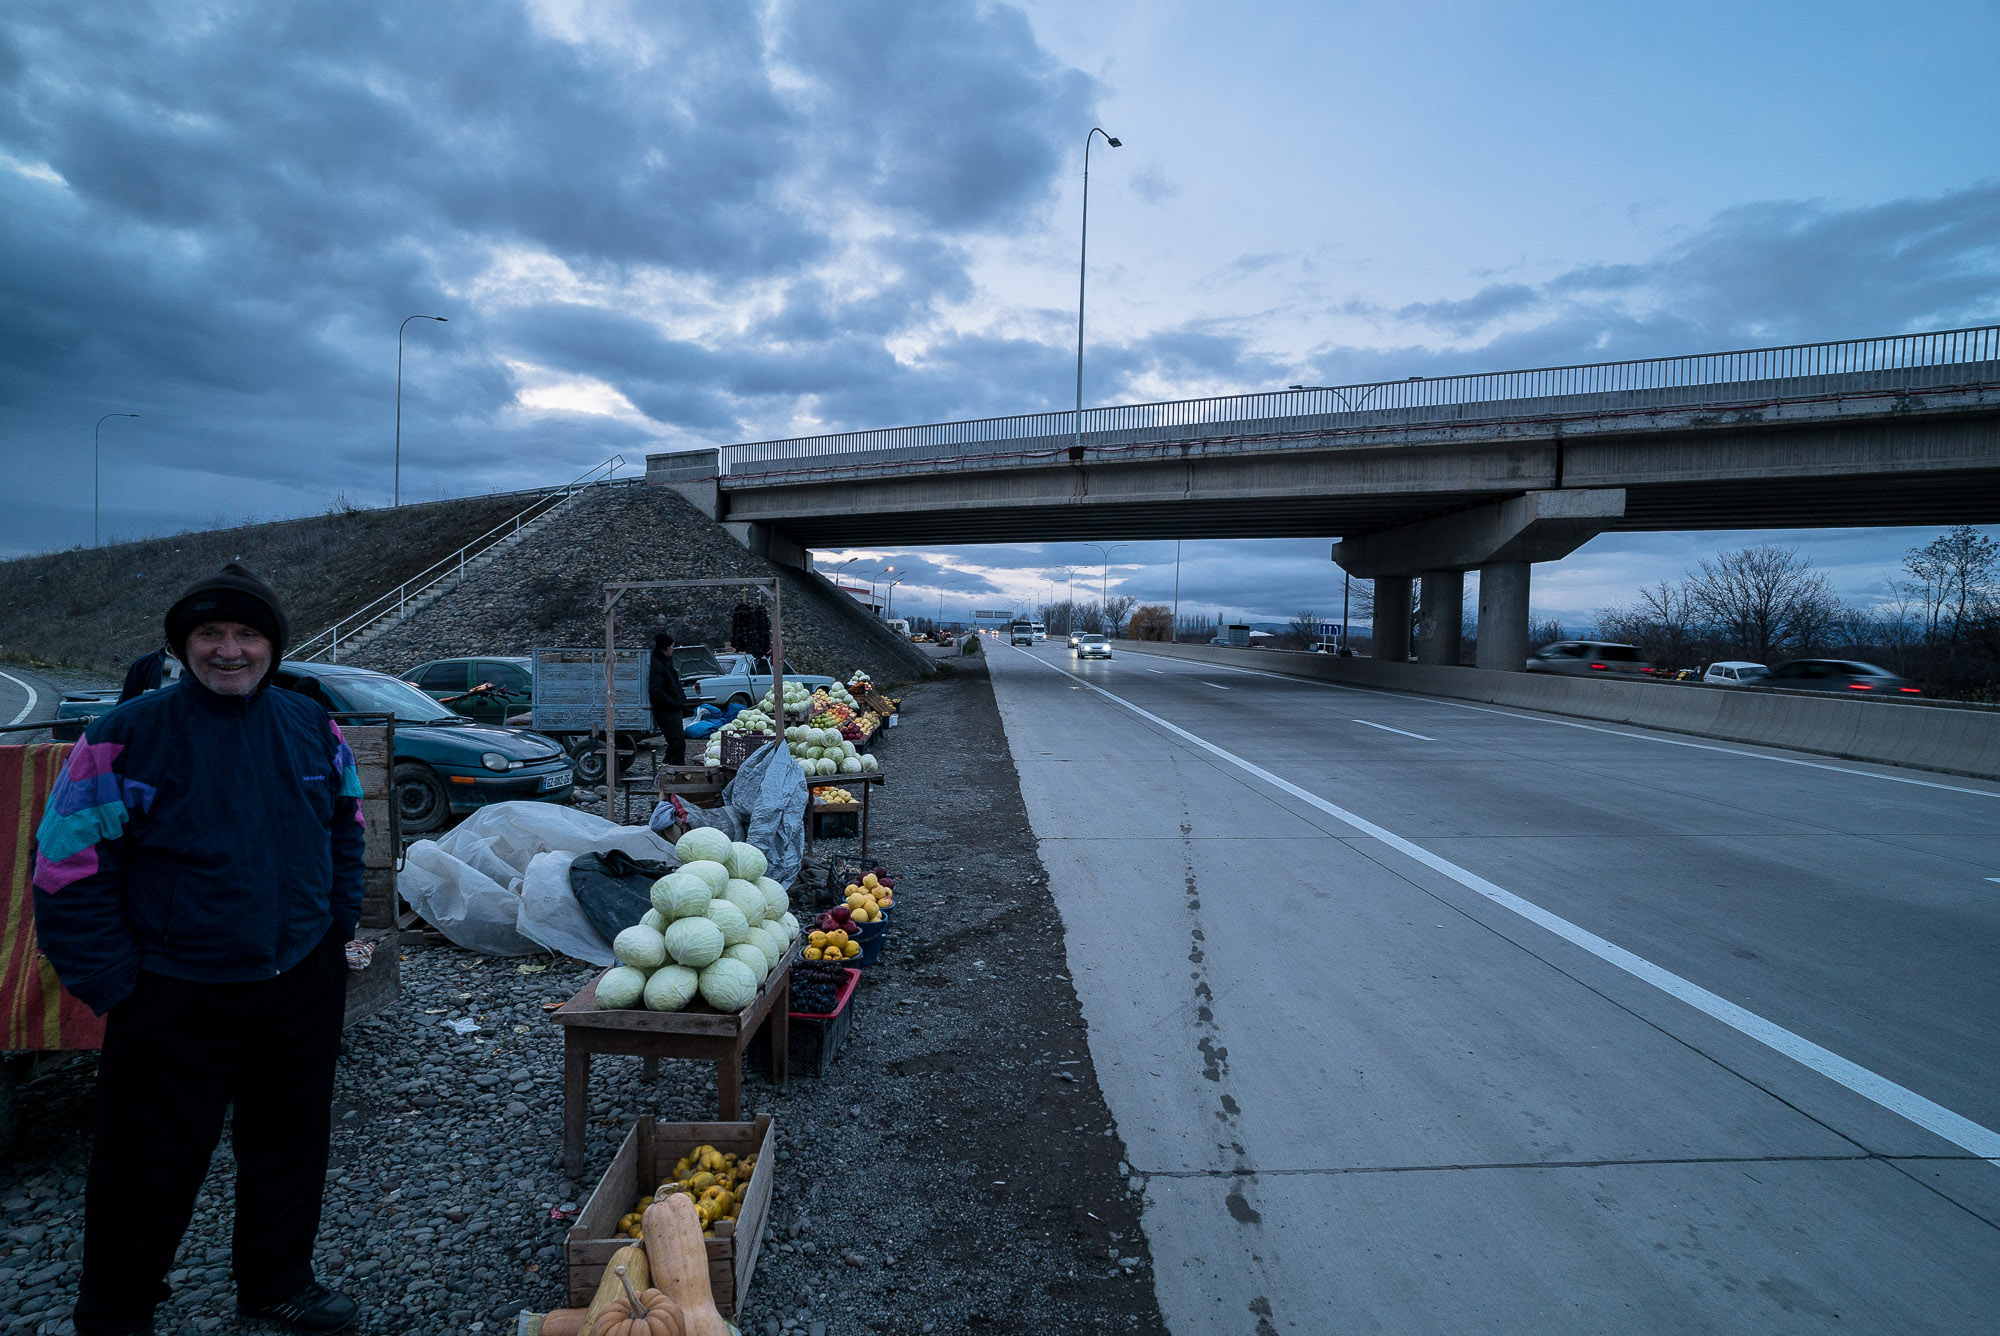 people selling fruits next to the highway